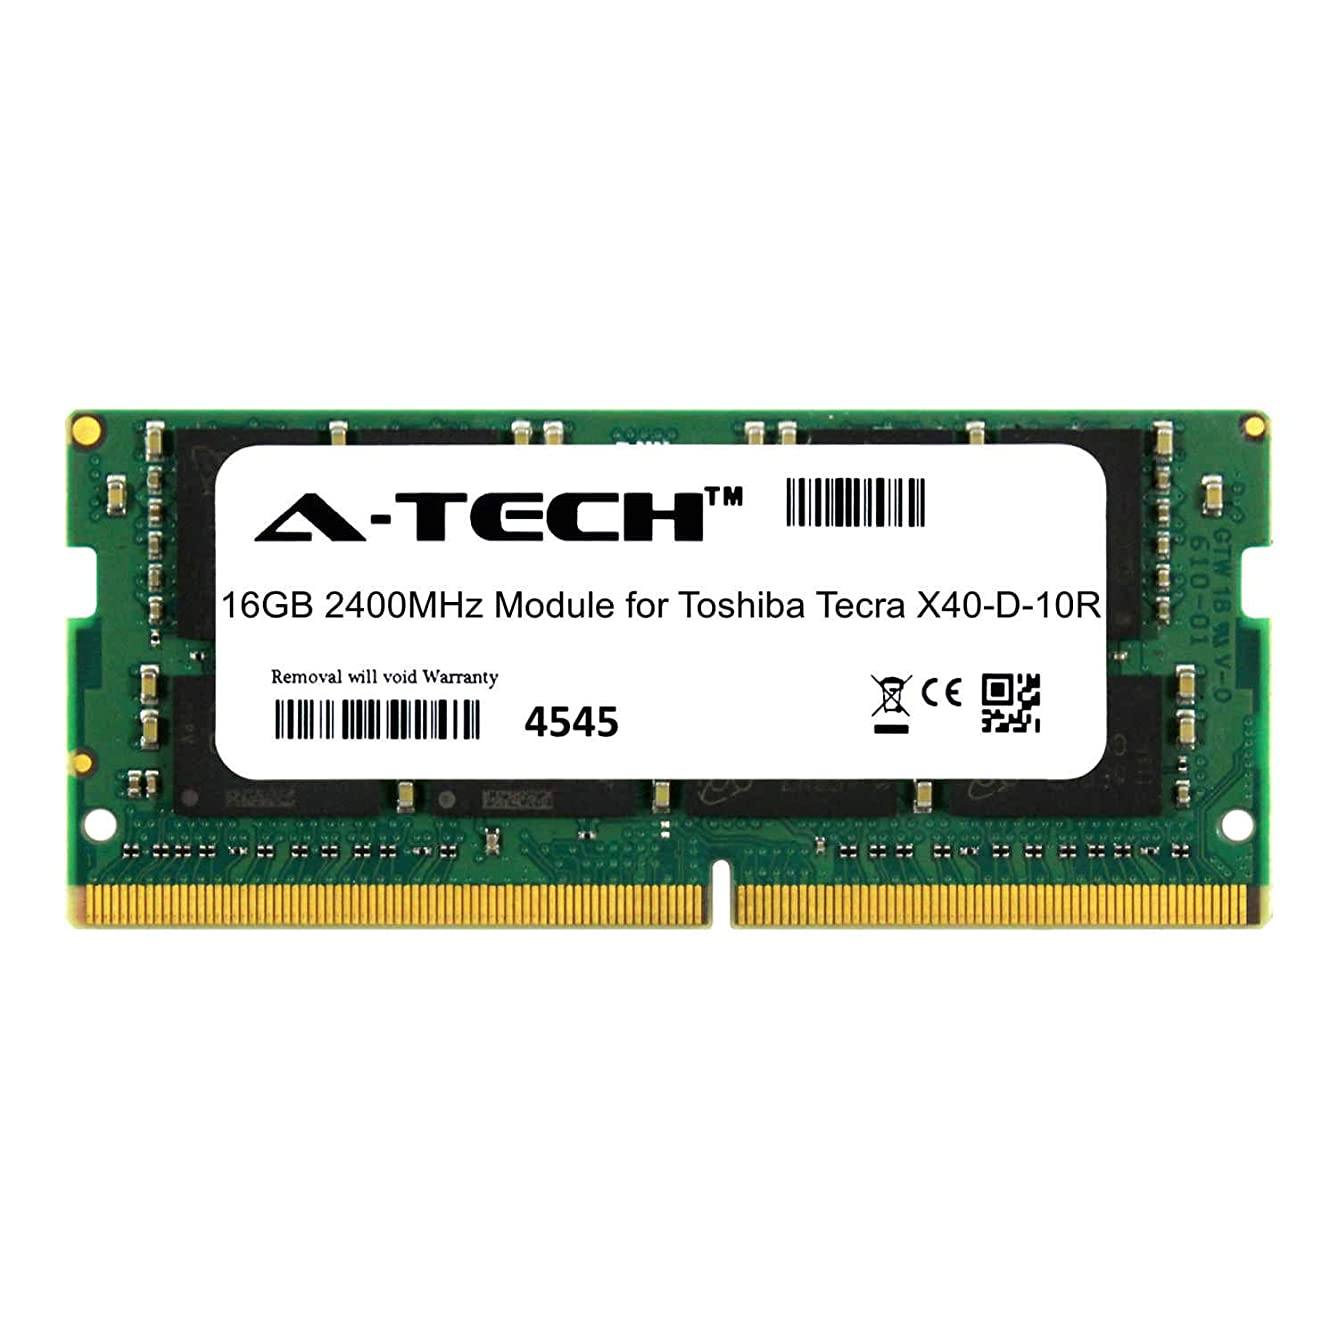 A-Tech 16GB Module for Toshiba Tecra X40-D-10R Laptop & Notebook Compatible DDR4 2400Mhz Memory Ram (ATMS350006A25831X1)